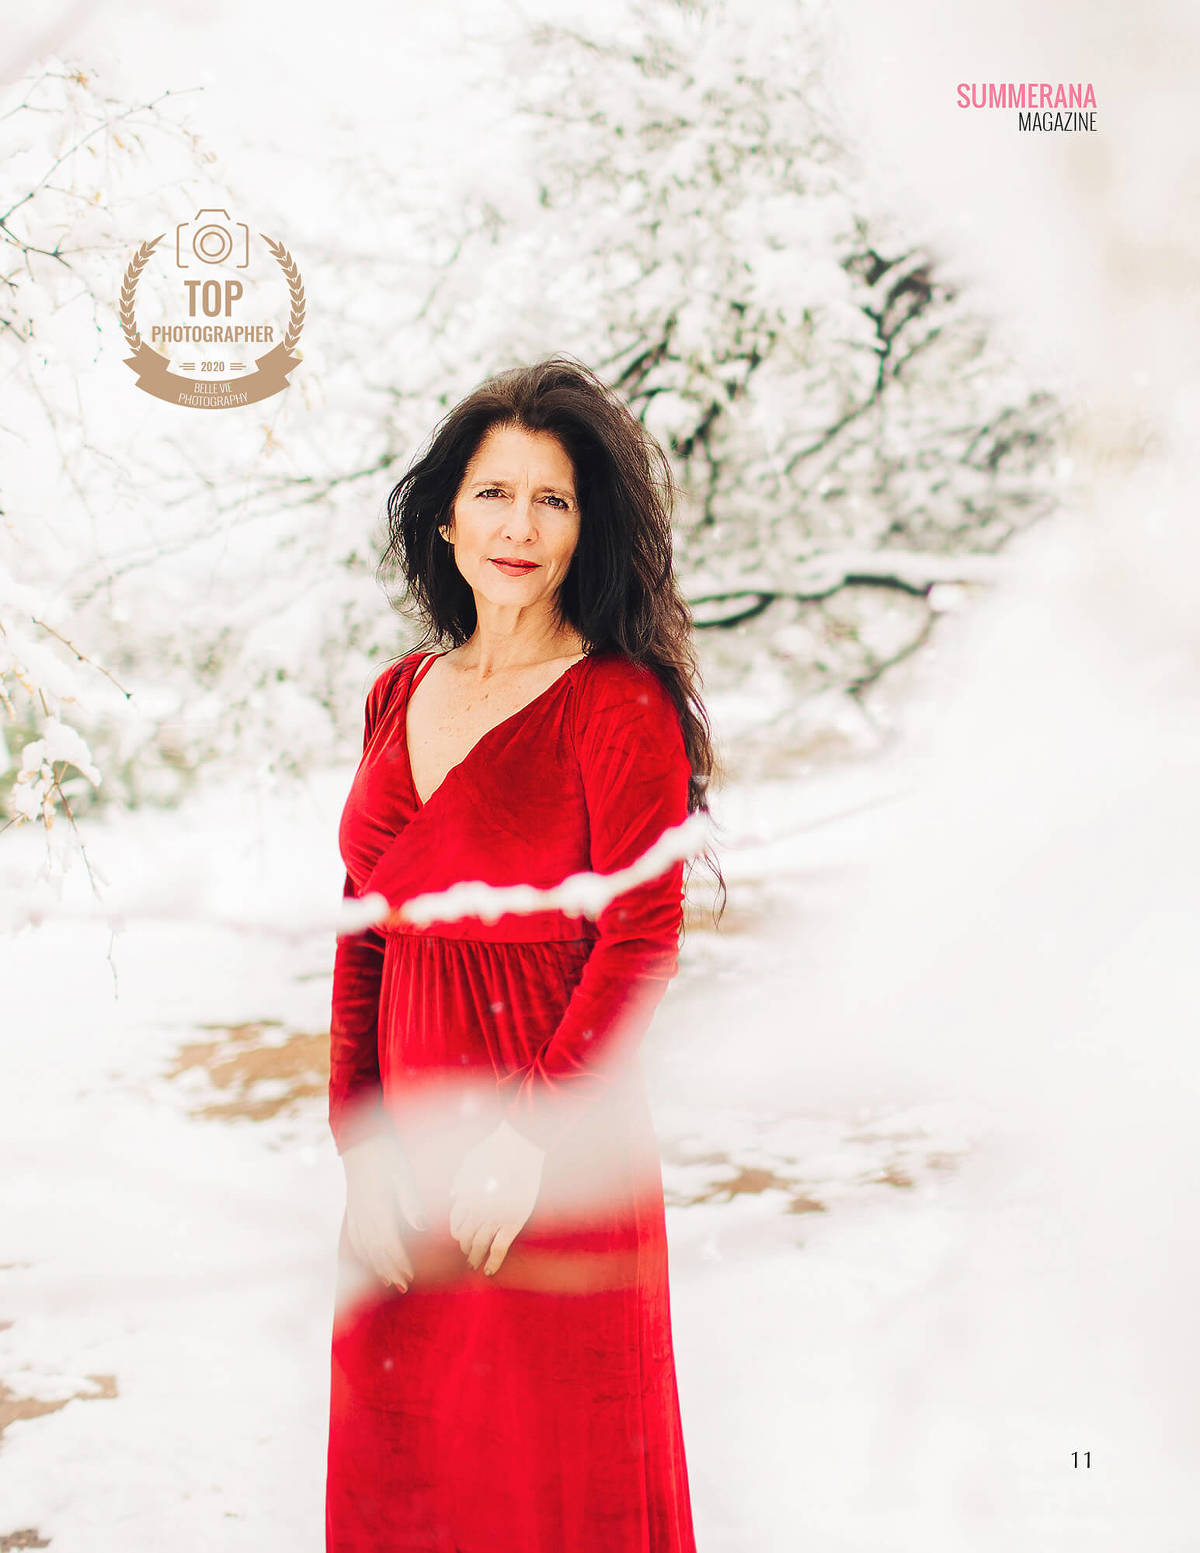 Top Photographer Summerana Magazine January 2020 a woman in the snow in a red dress